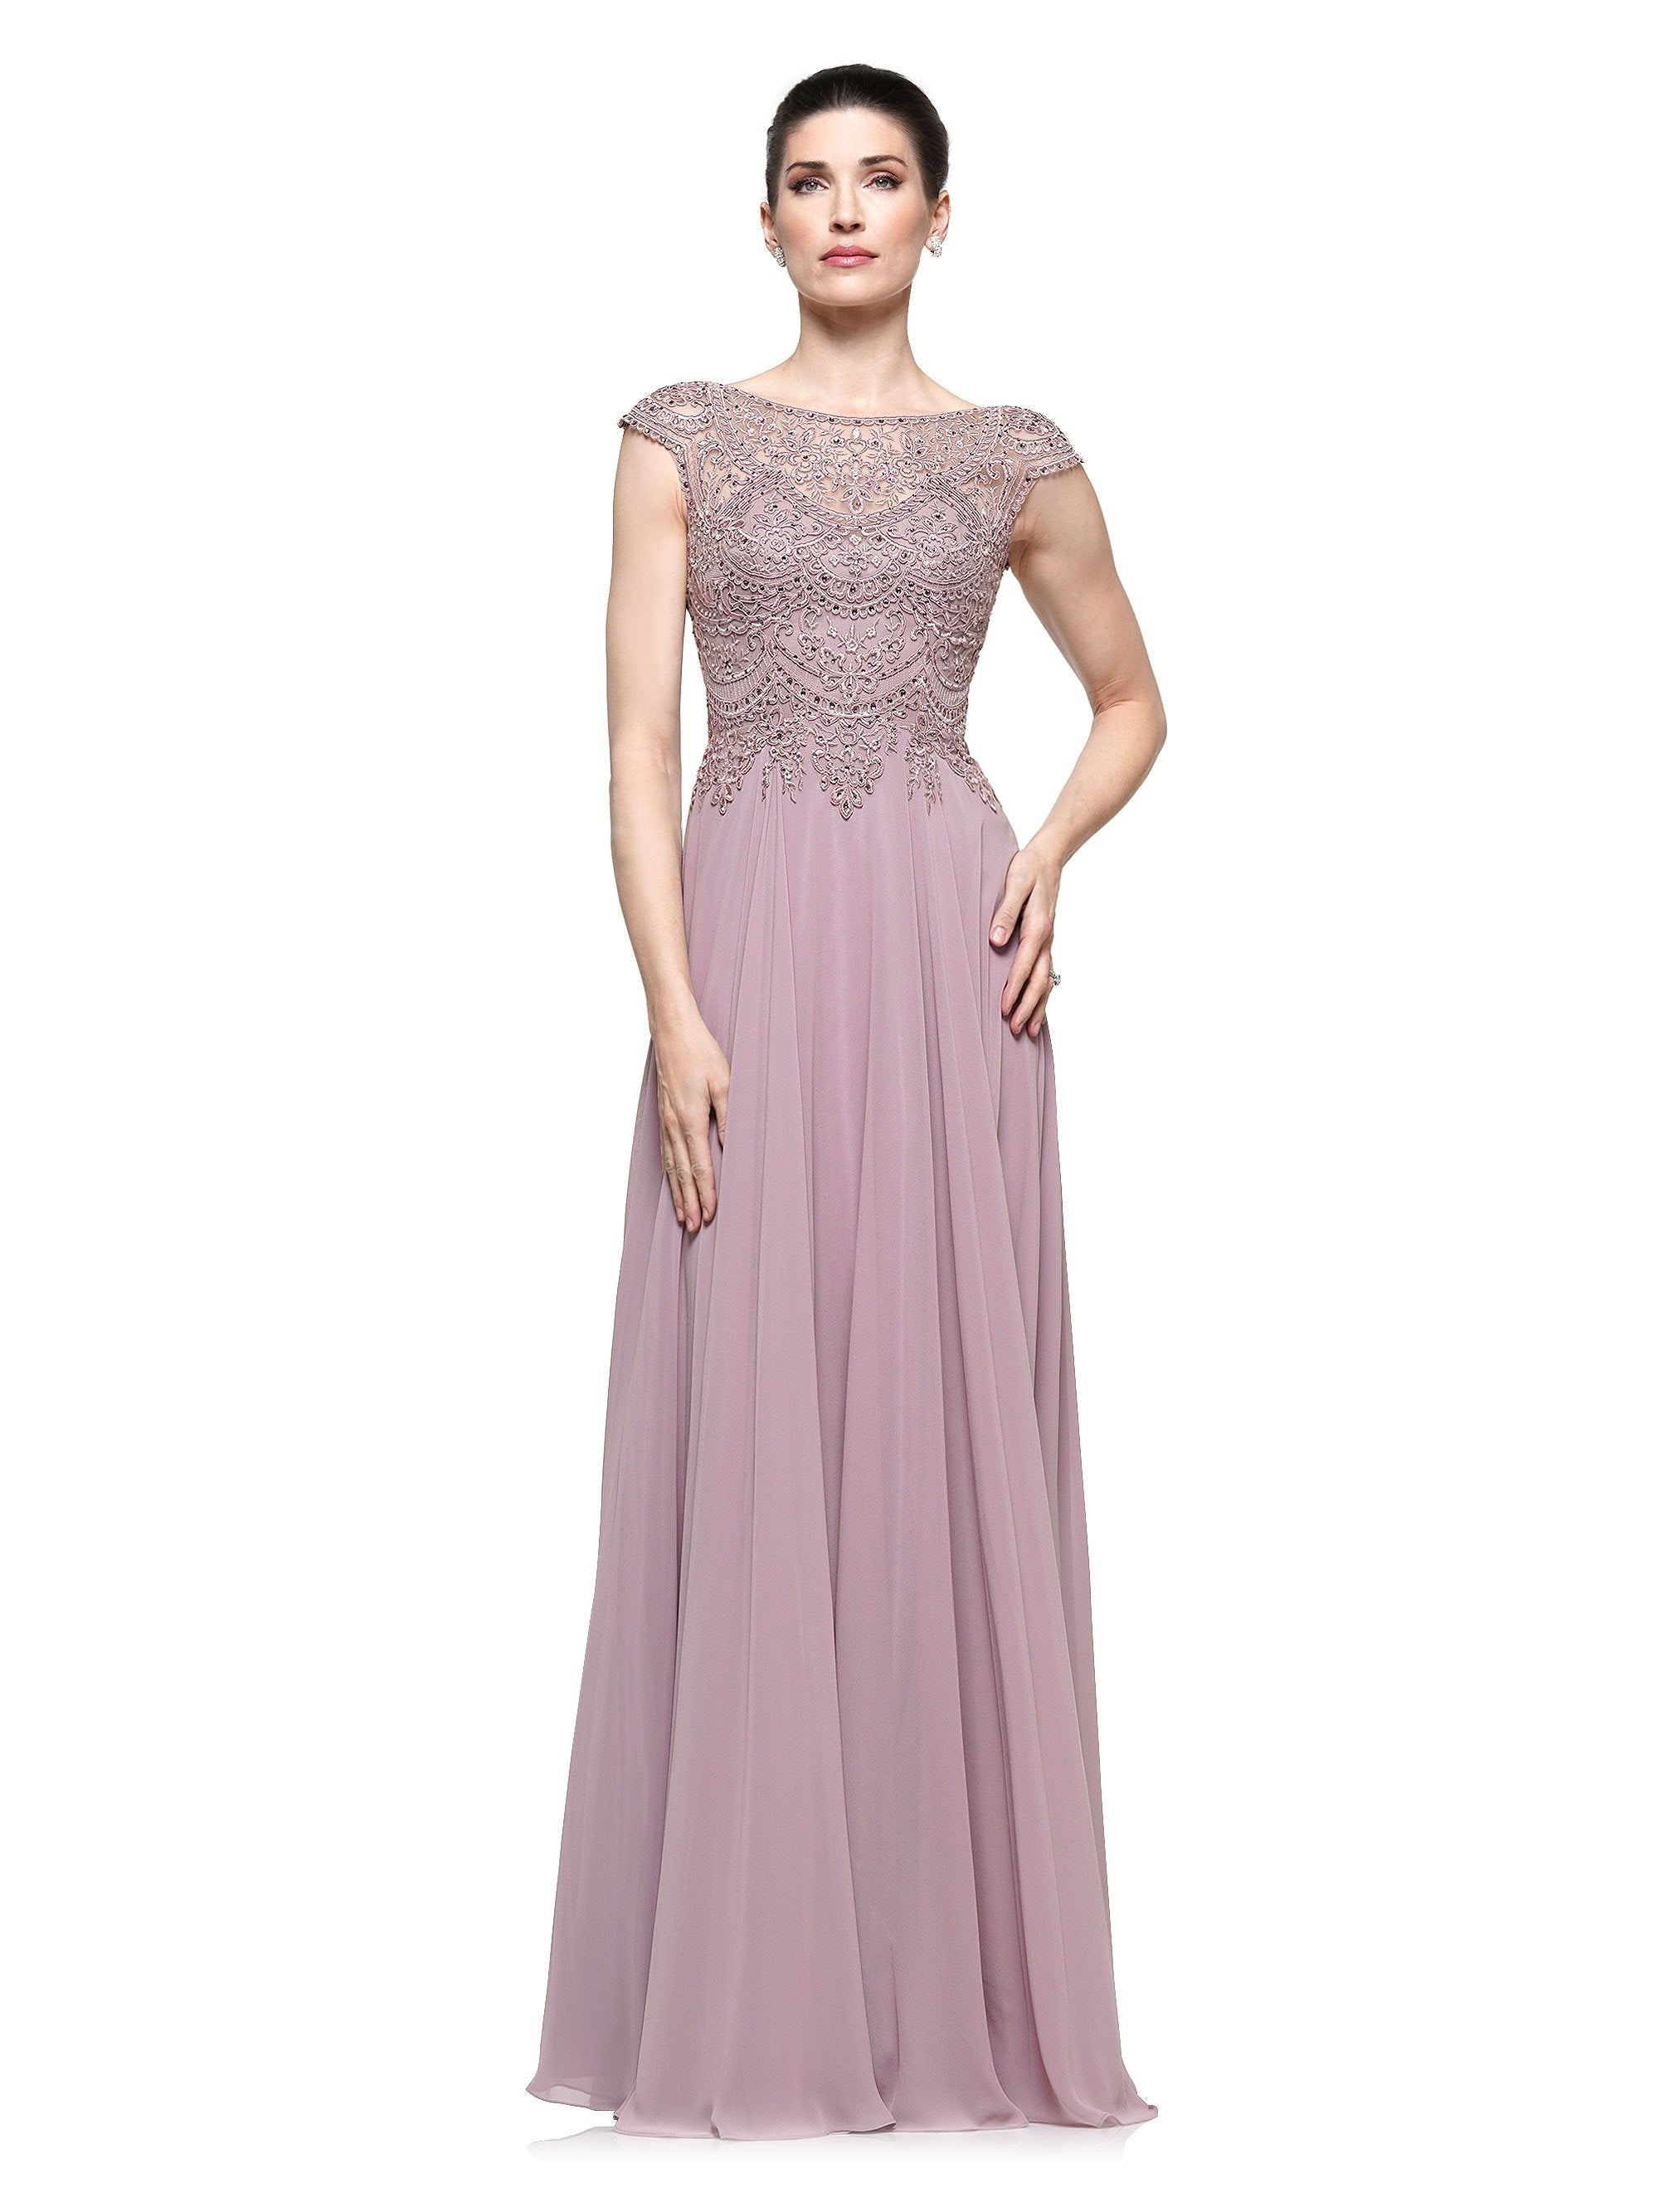 Marsoni by Colors - M238SC Embellished Scoop Neck A Line Chiffon Dress